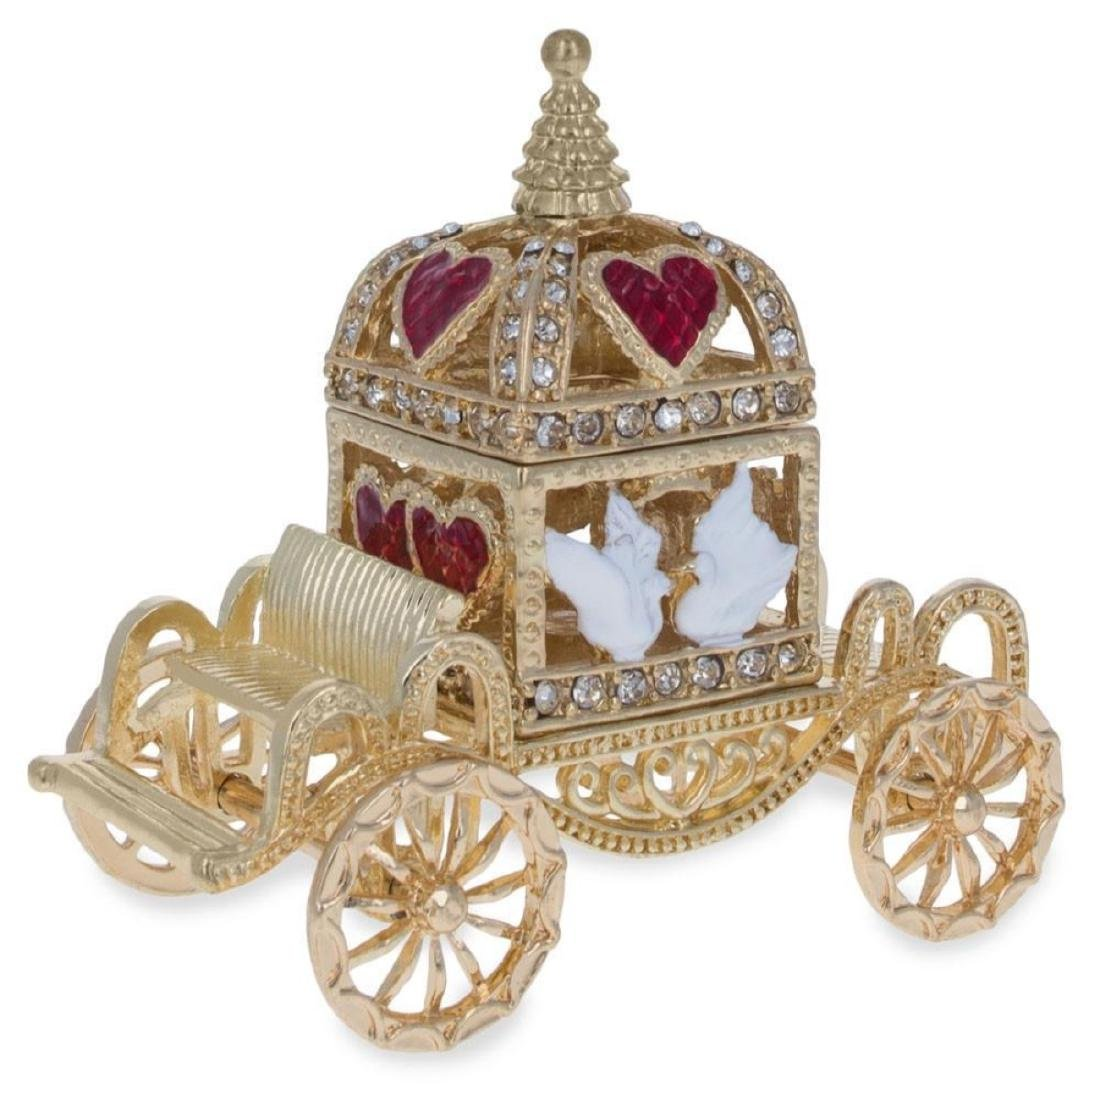 Royal Coronation Coach with Doves Trinket Box Figurine